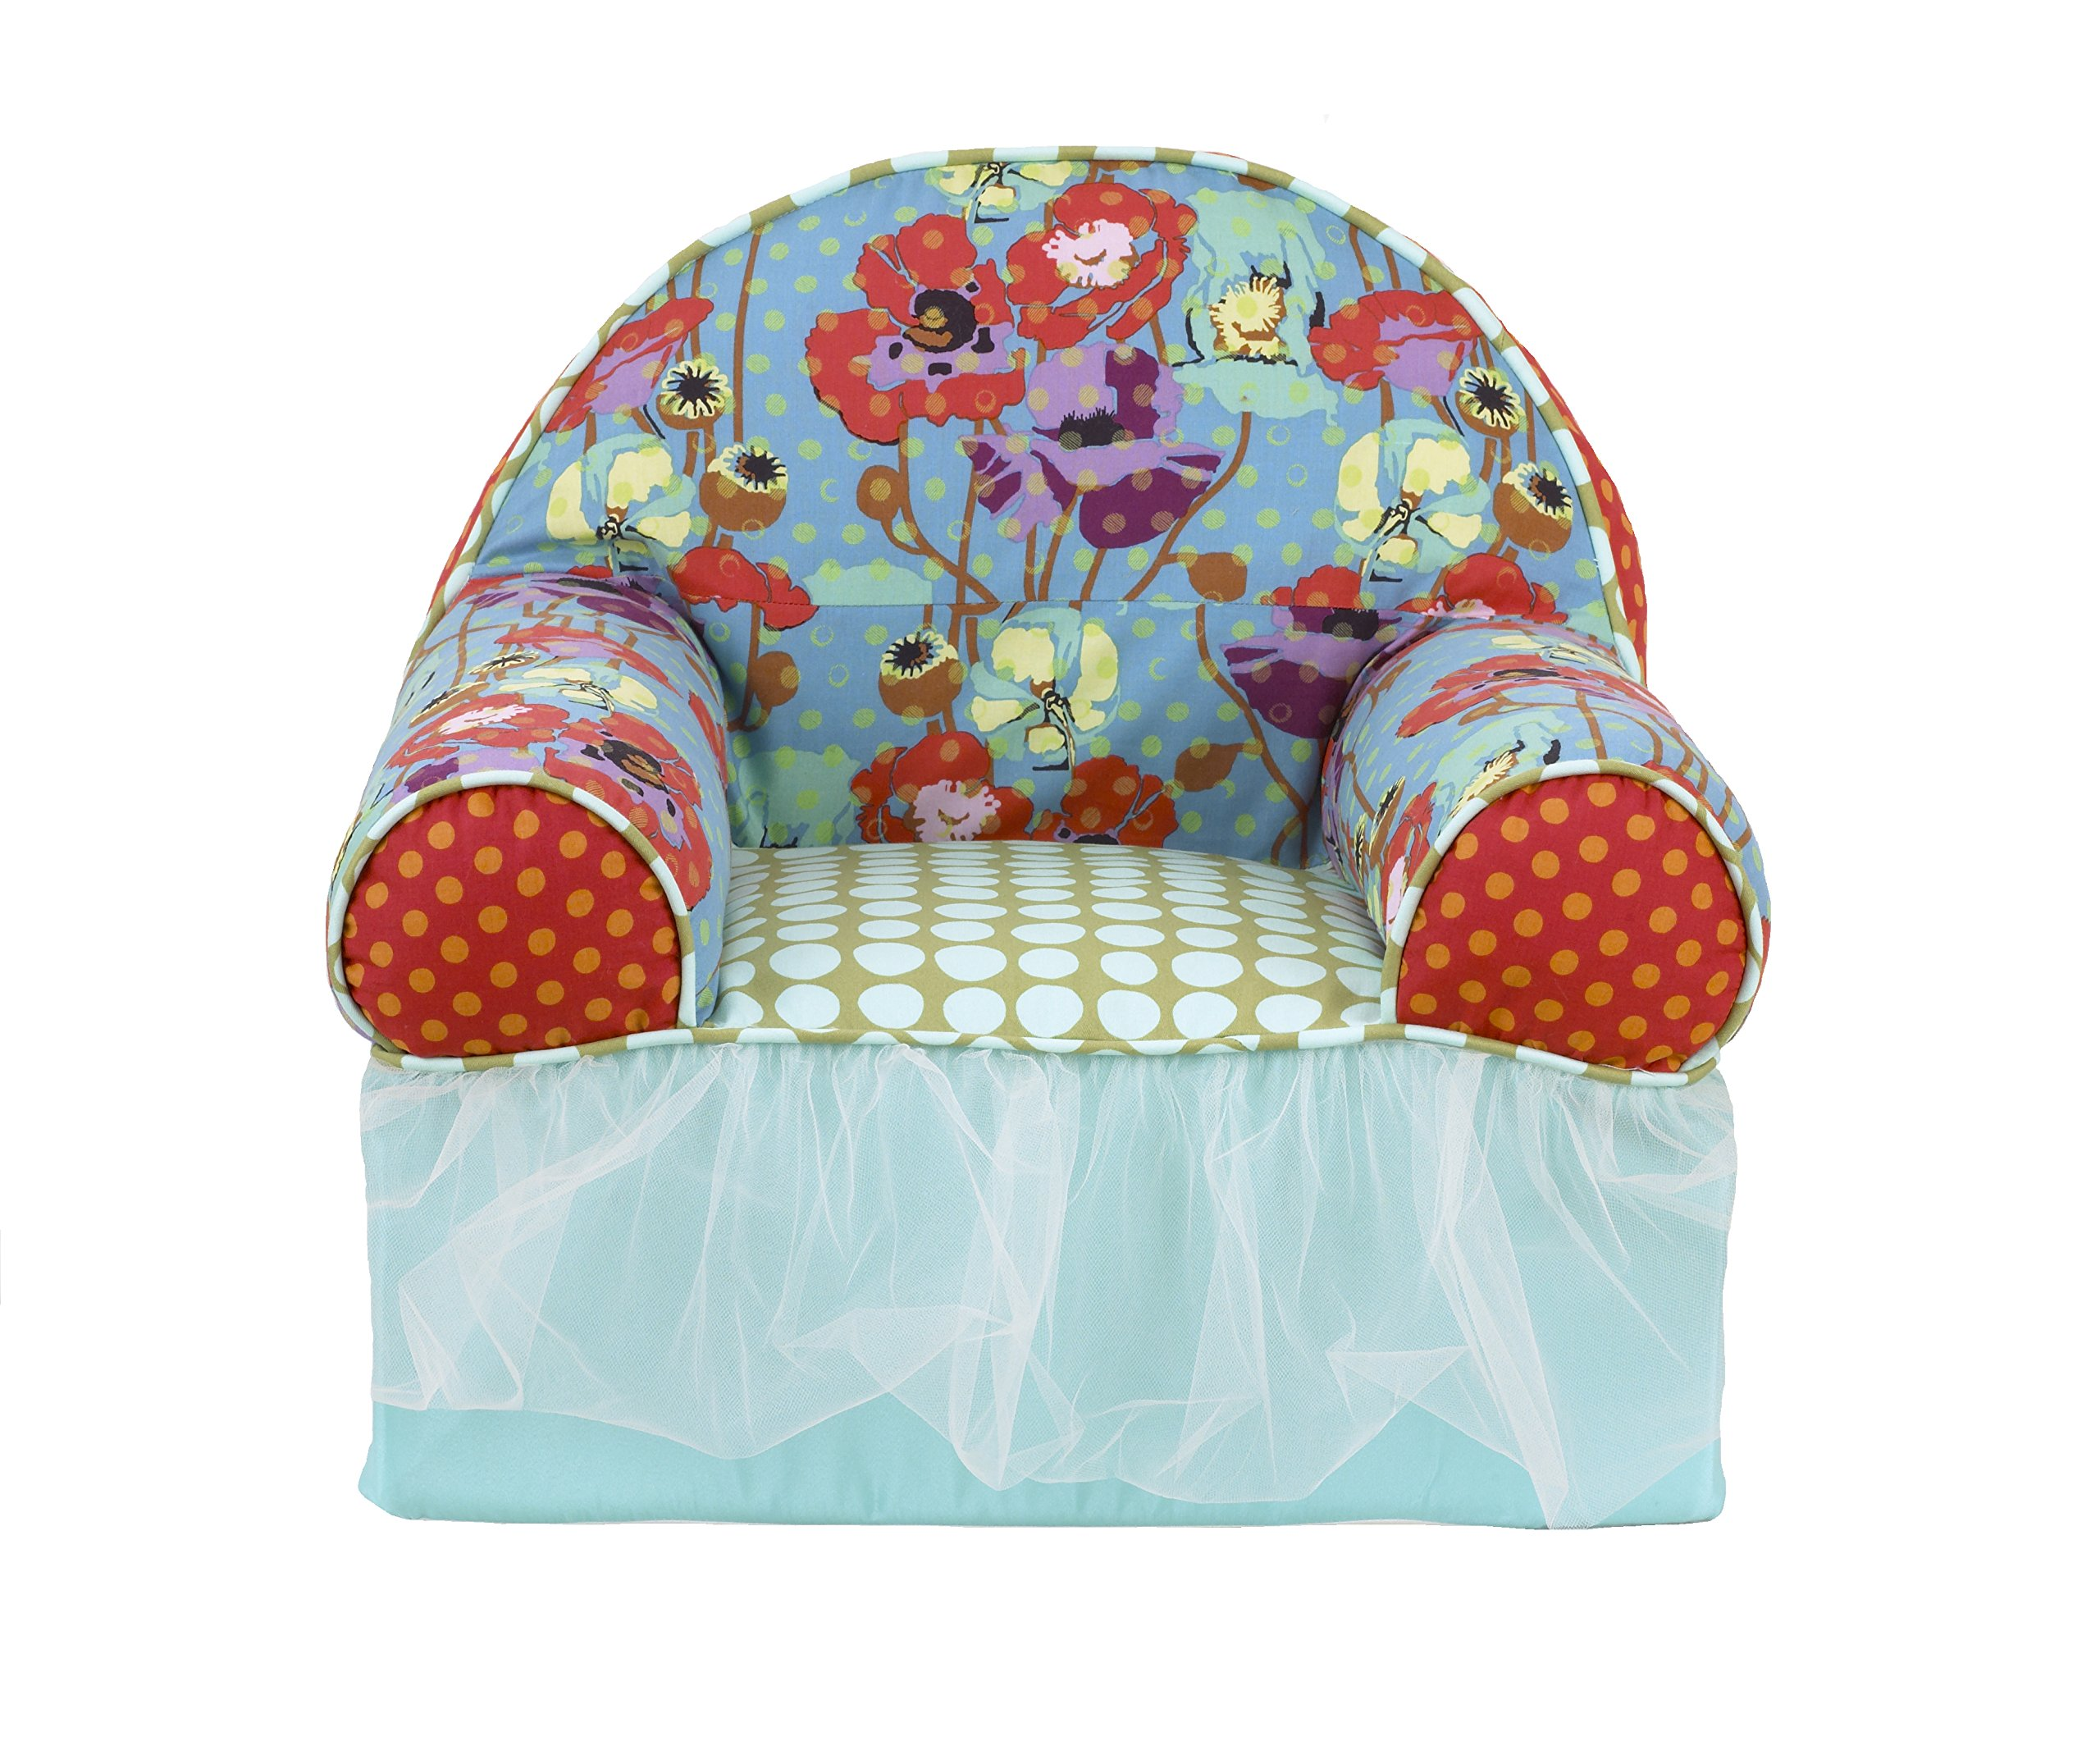 Cotton Tale Designs Lagoon Baby's 1st Chair, Turquoise/Purple/Orange/Green